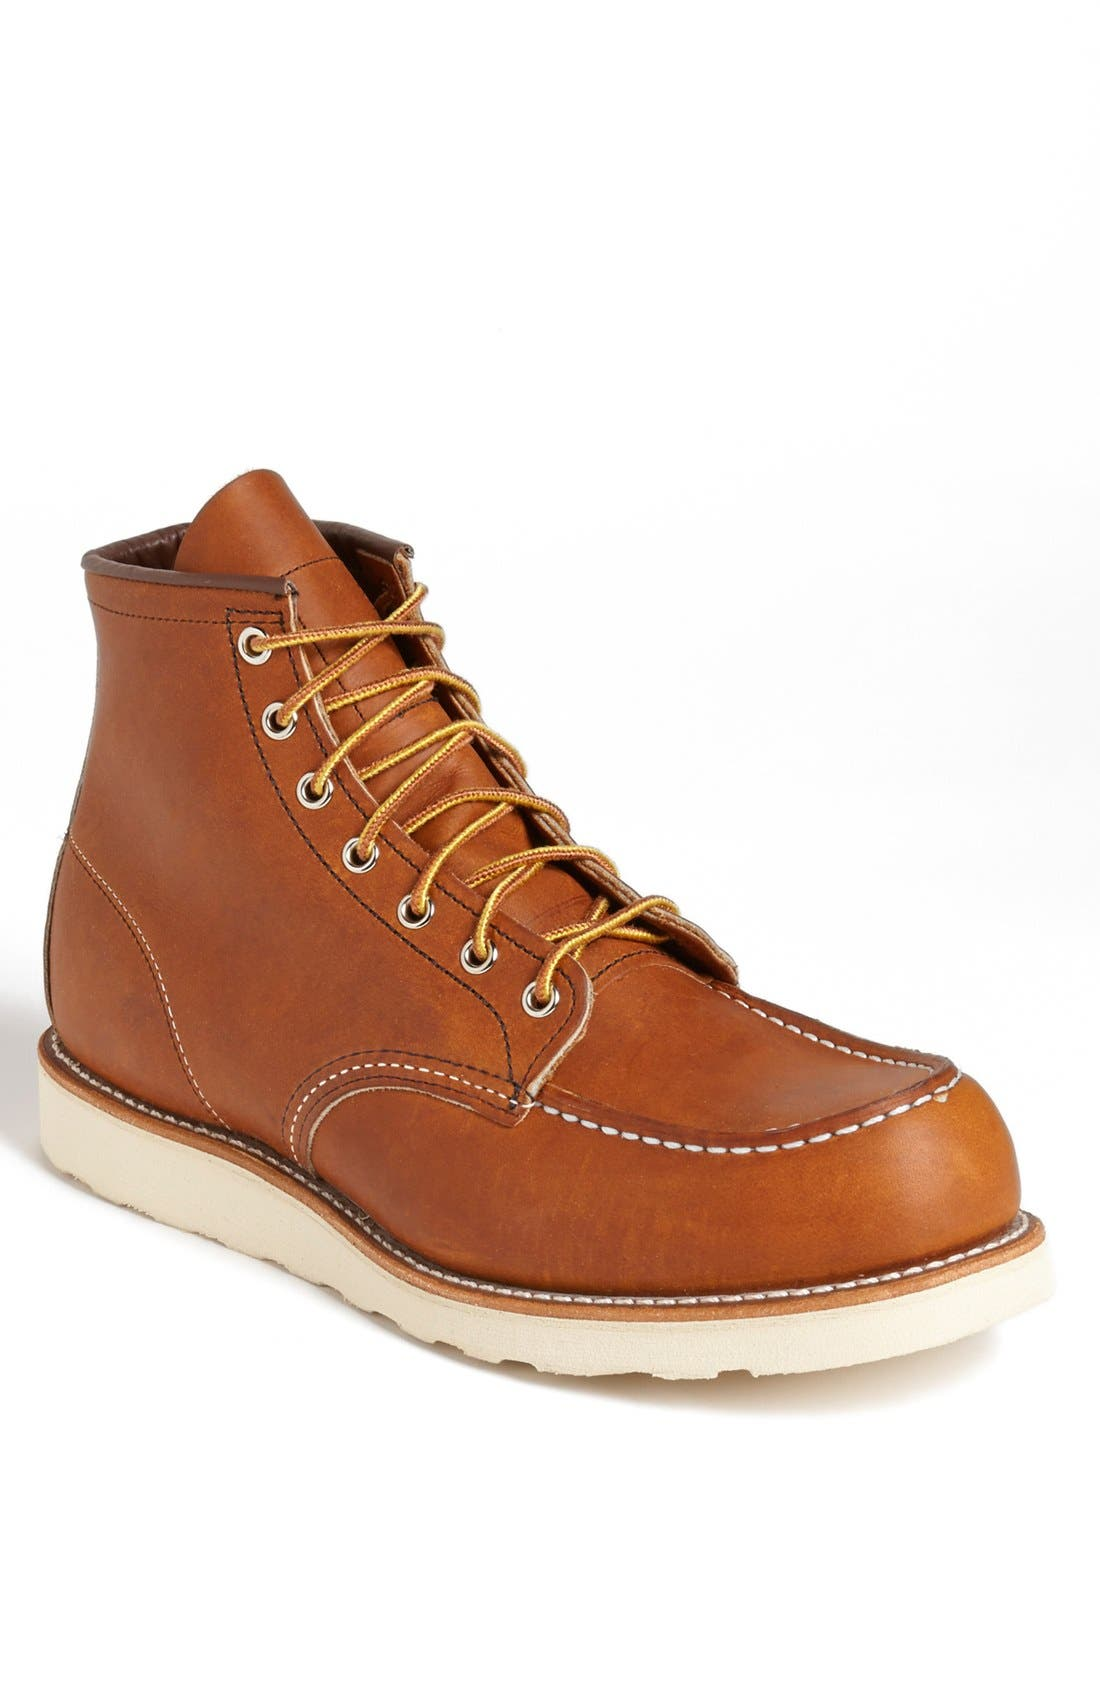 Red Wing '875' 6 Inch Moc Toe Boot